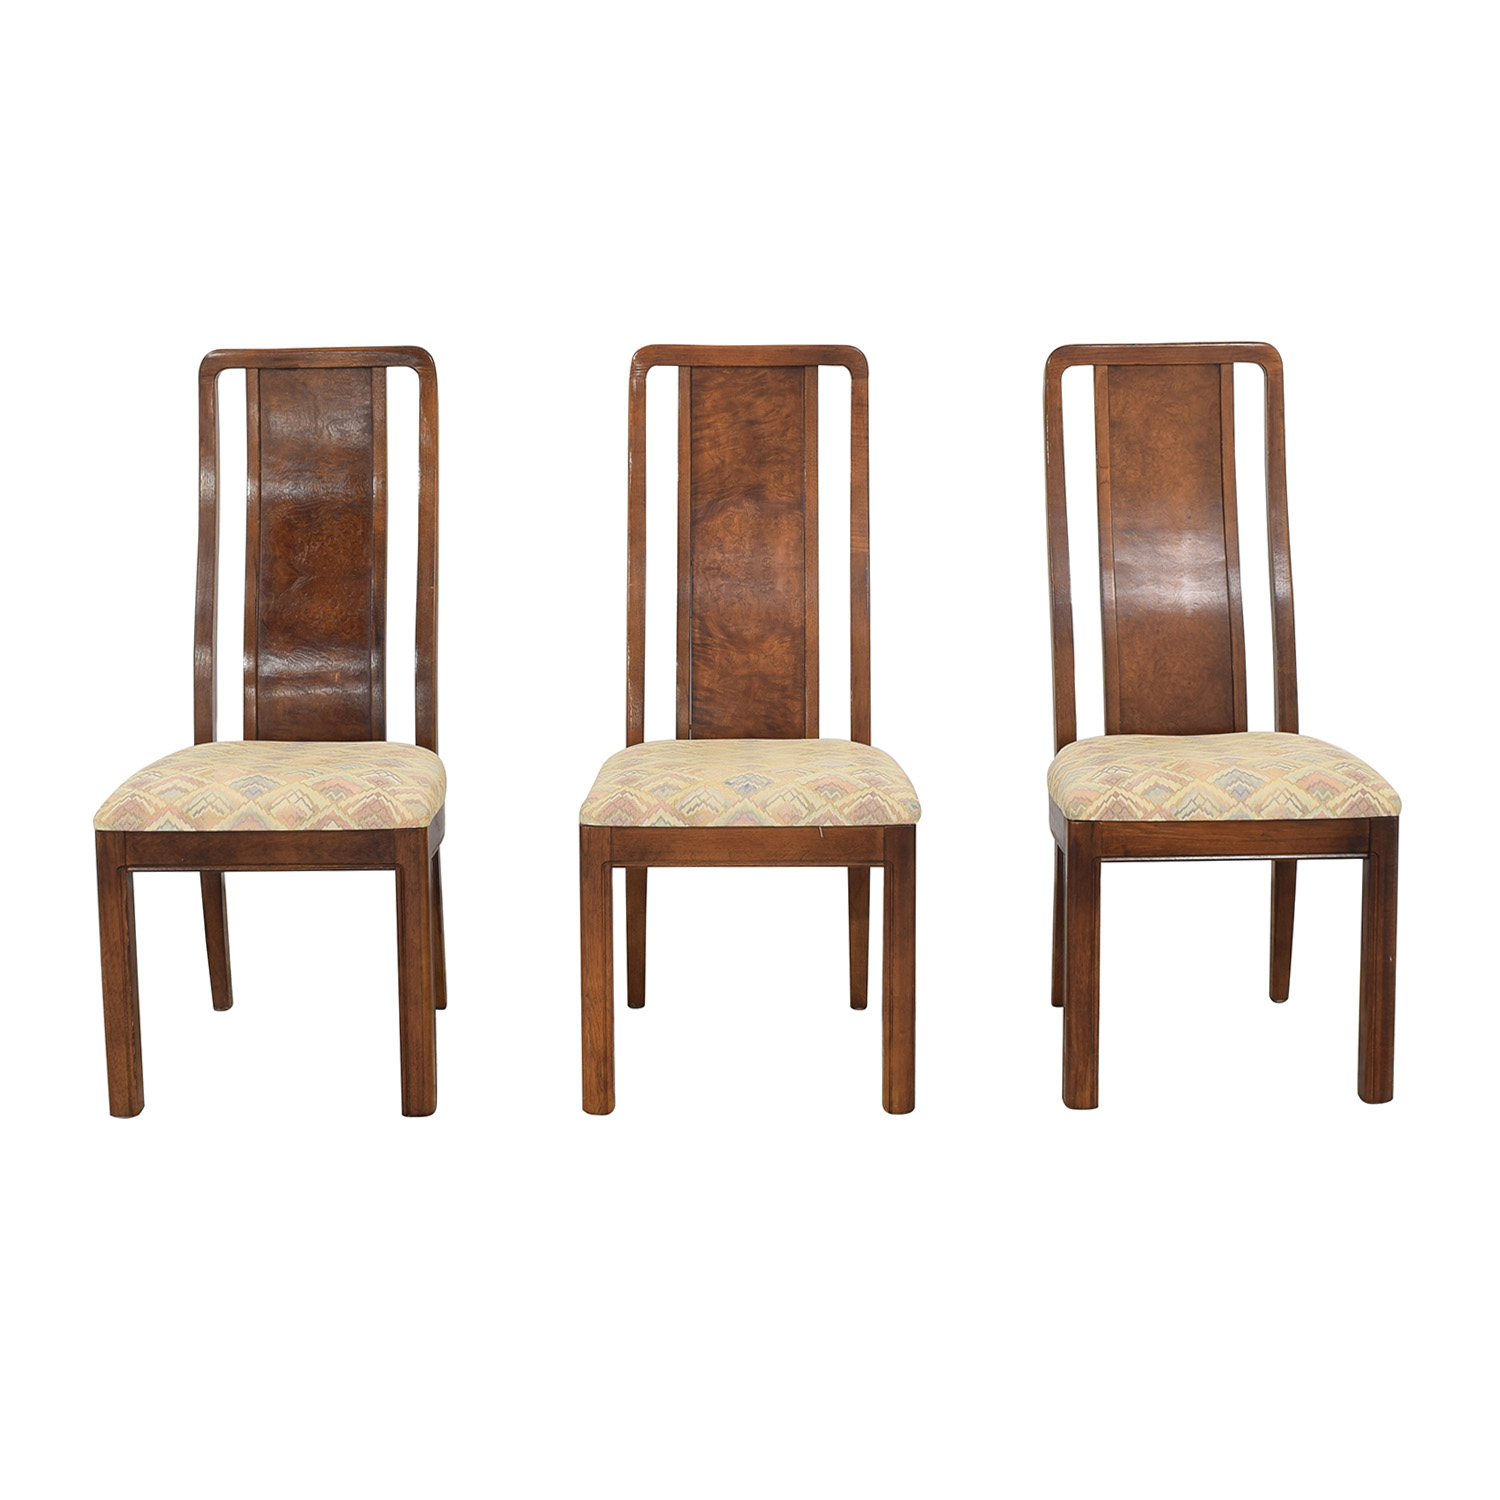 Thomasville Thomasville Vintage Burled Dining Chairs pa